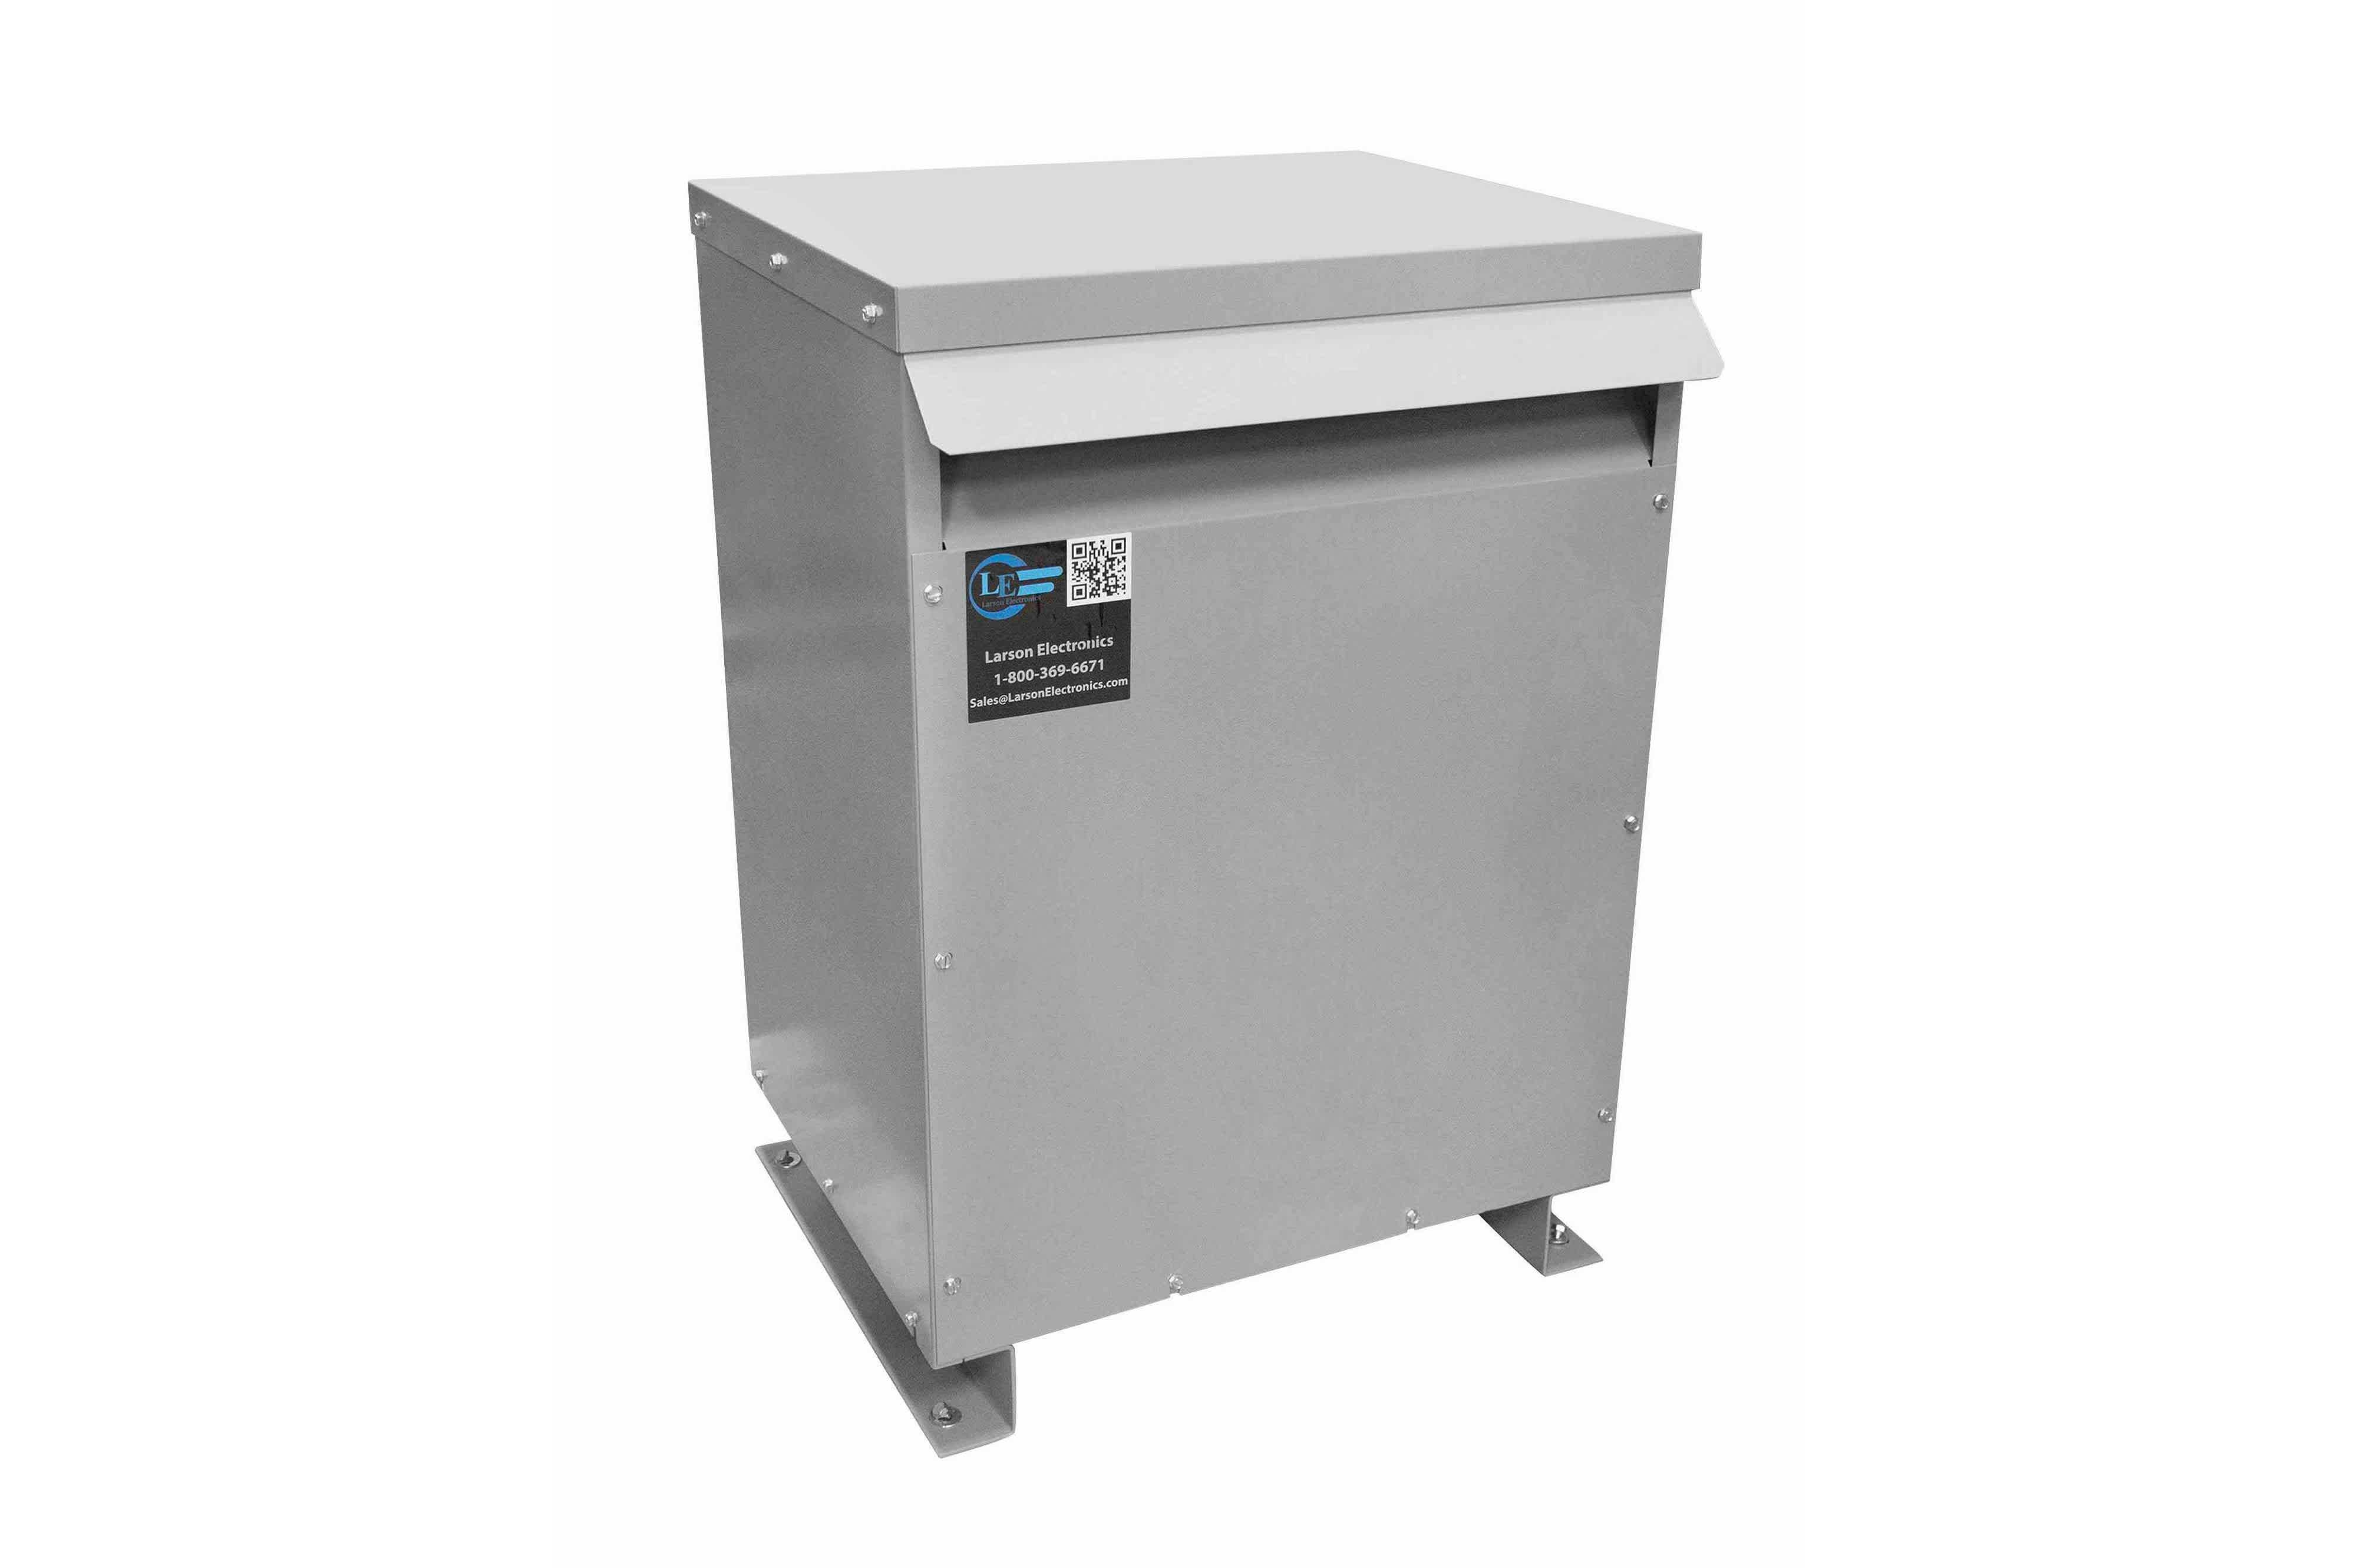 14 kVA 3PH Isolation Transformer, 460V Wye Primary, 400Y/231 Wye-N Secondary, N3R, Ventilated, 60 Hz